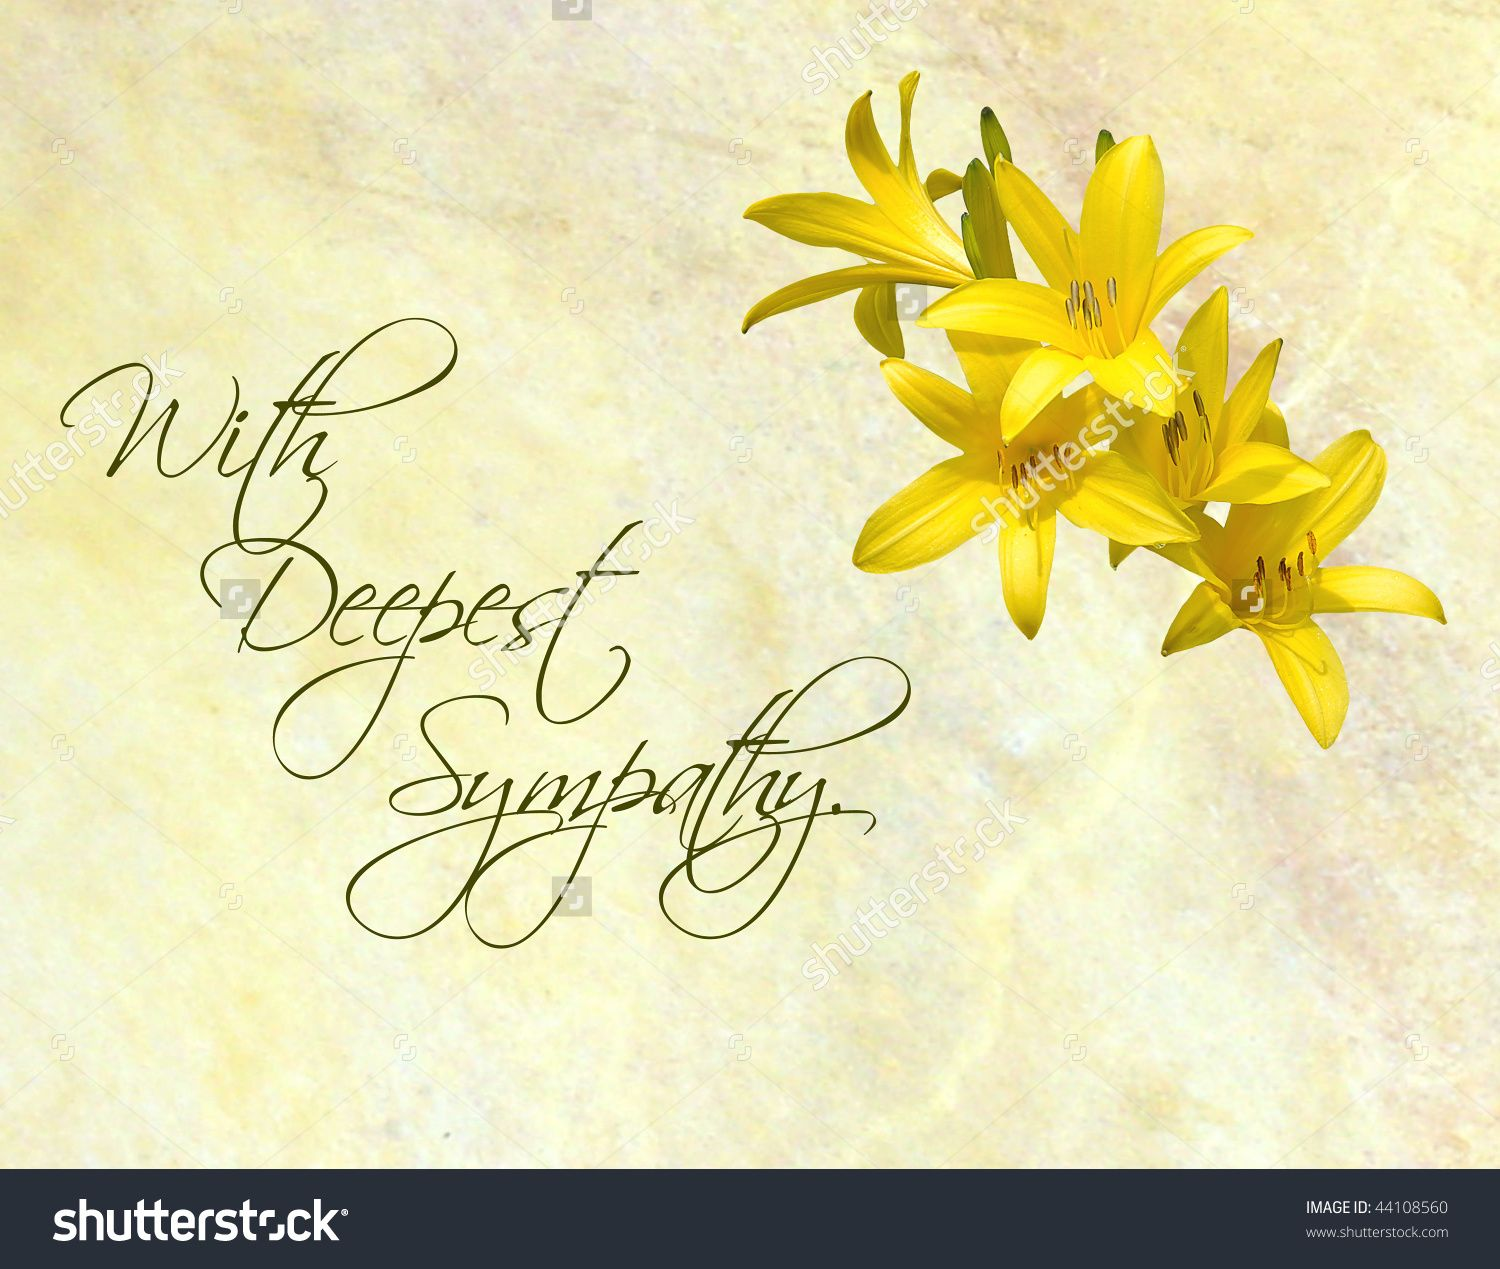 Stock photo sympathy card featuring pretty day lilies on a yellow stock photo sympathy card featuring pretty day lilies condolence messagescondolencessympathy greetingssympathy kristyandbryce Choice Image